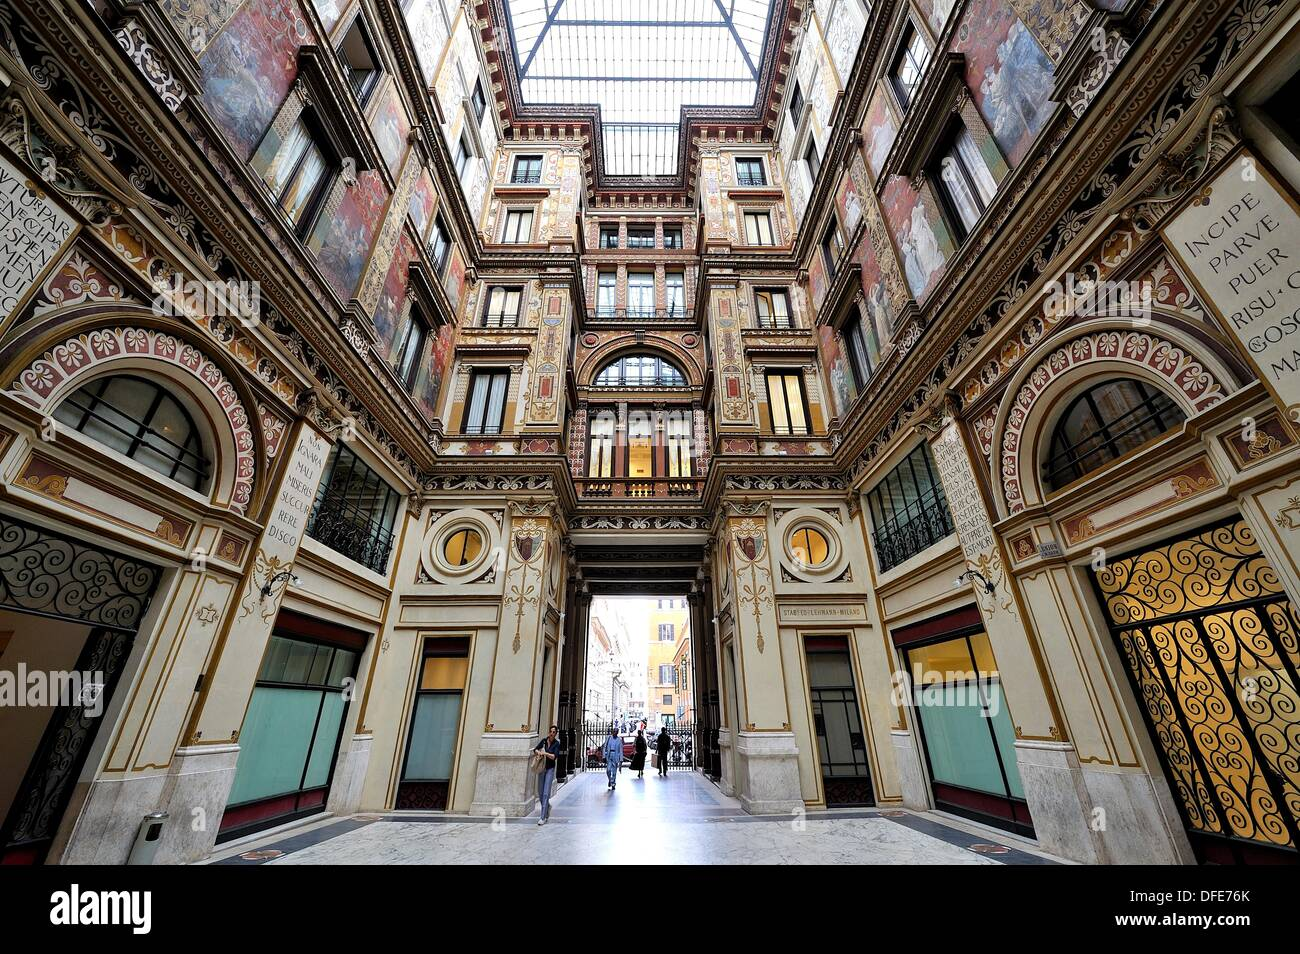 Richly decorated interior courtyard, Rome - Stock Image